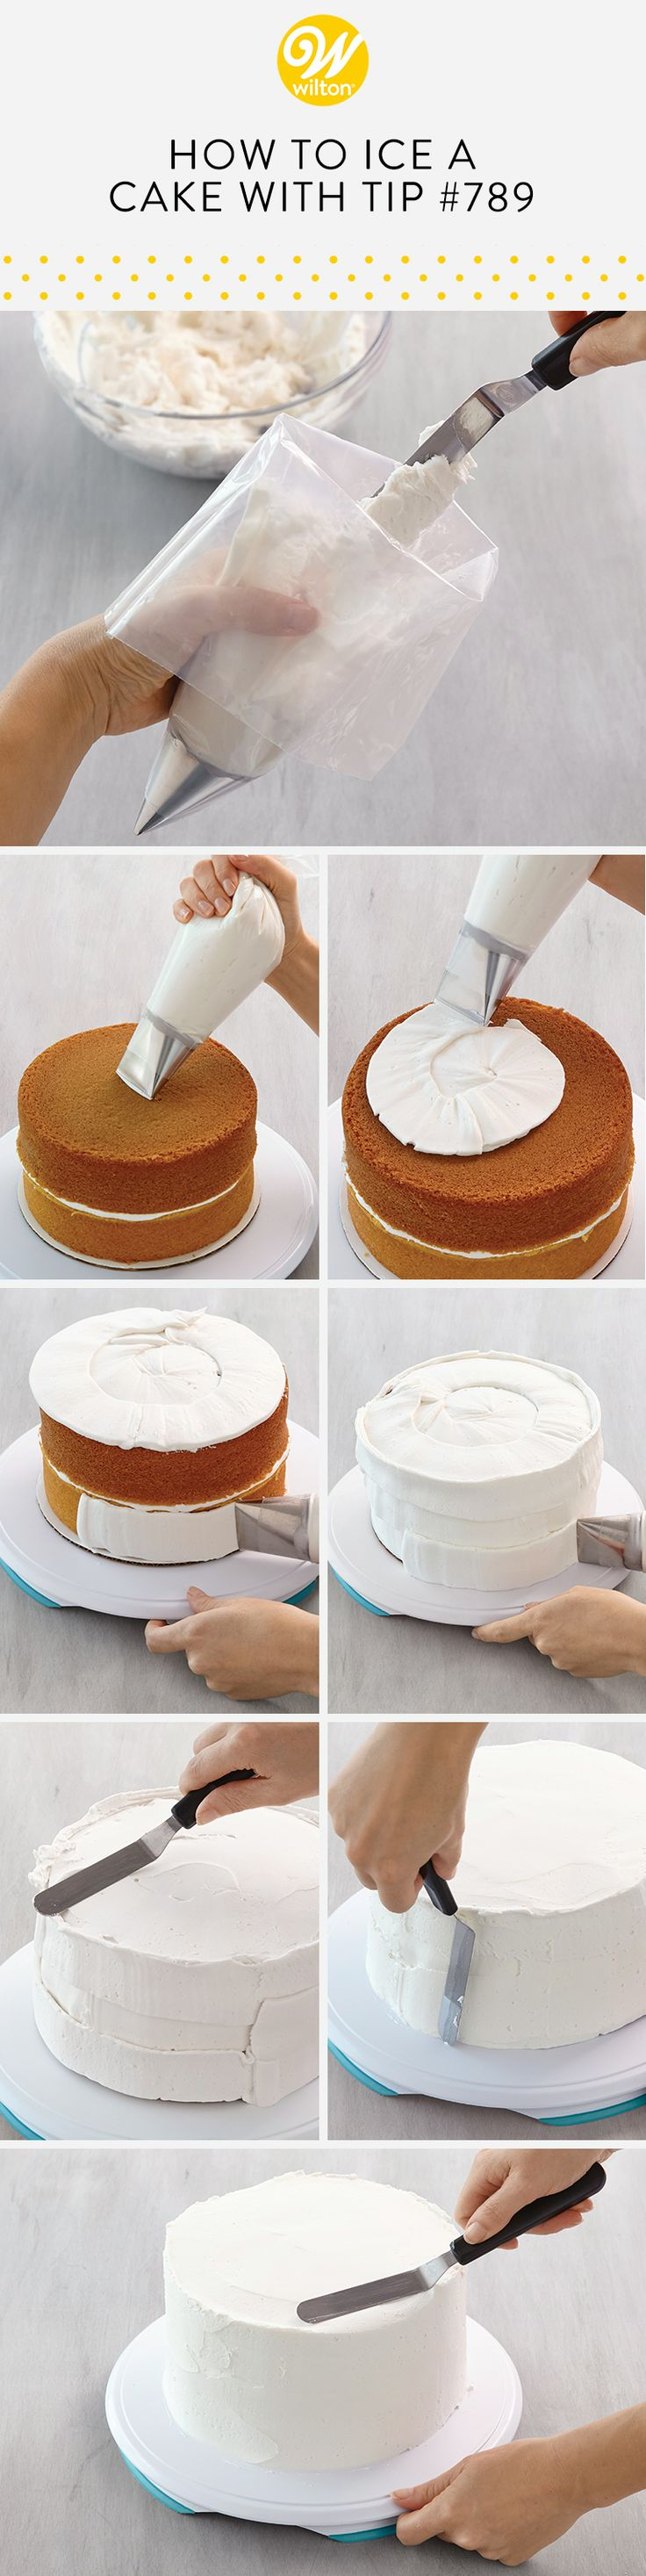 Using the cake icer tip, tip 789, makes covering a cake in buttercream simple! This tip allows you to get the perfect even coverage so you have the best surface to start decorating your cakes! #wiltoncakes #cakes #cakesofinstagram #cakestagram #cakestyle #cakesofig #cakesdaily #instacake #cakeoftheday #buttercream #frosting #buttercreamfrosting